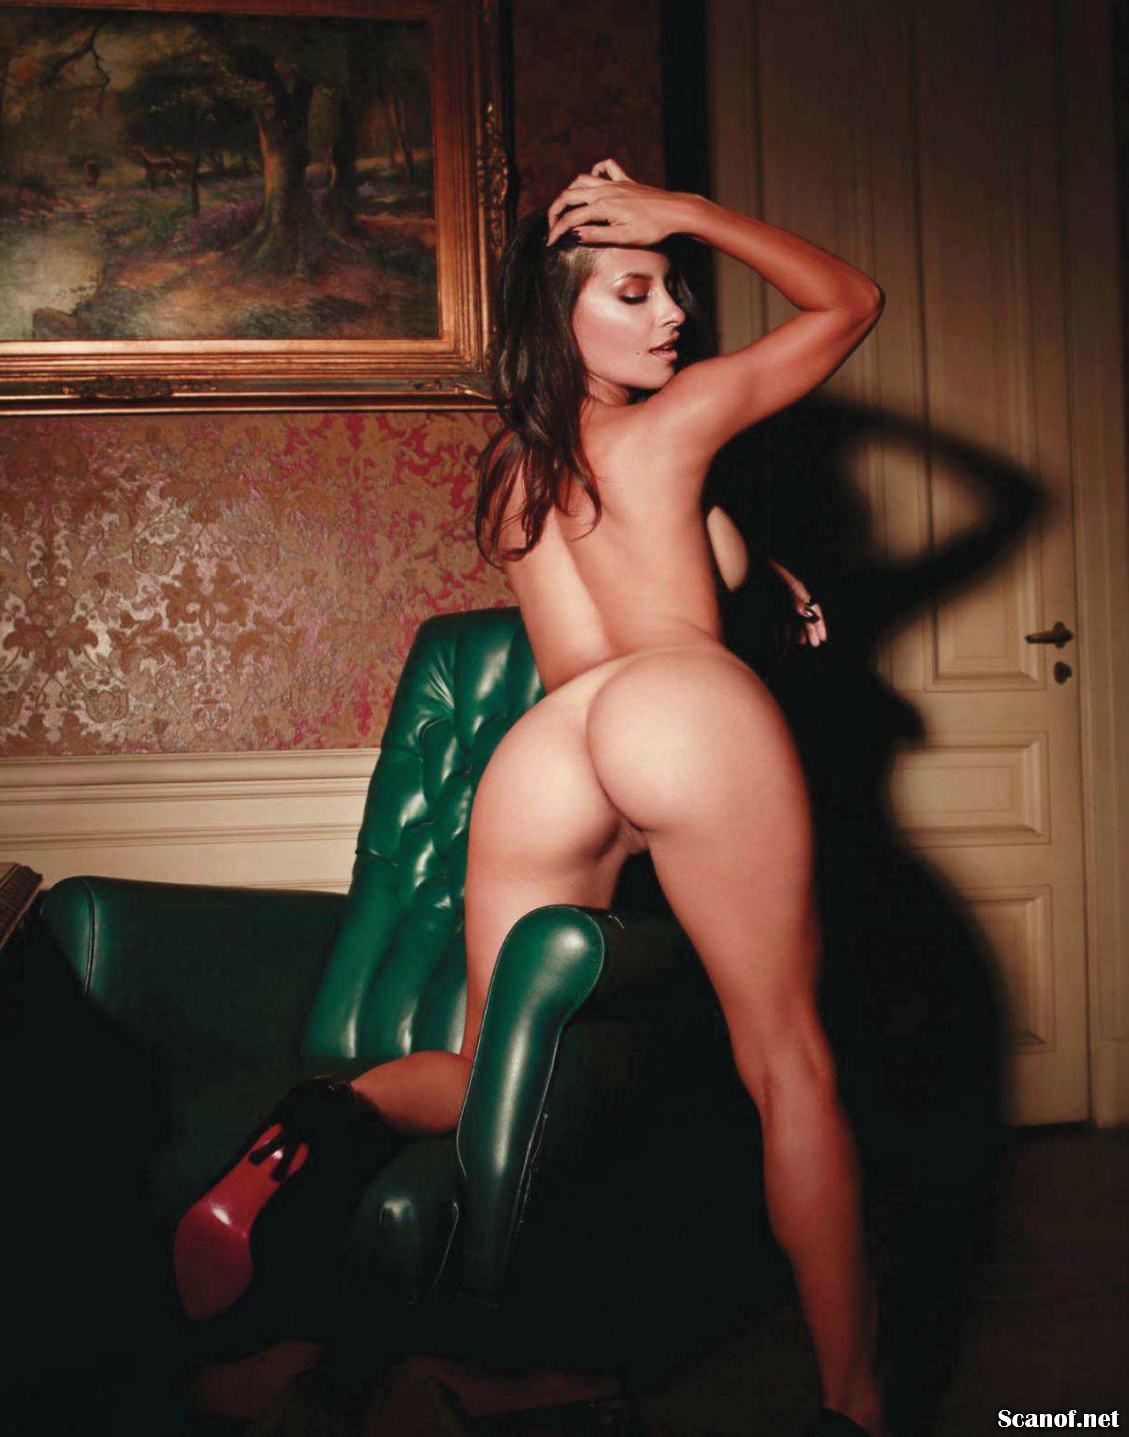 Lourdes-Sanchez-ass-pussy-topless-naked-nude-playboy-Argentina-scans-TFC-U-10